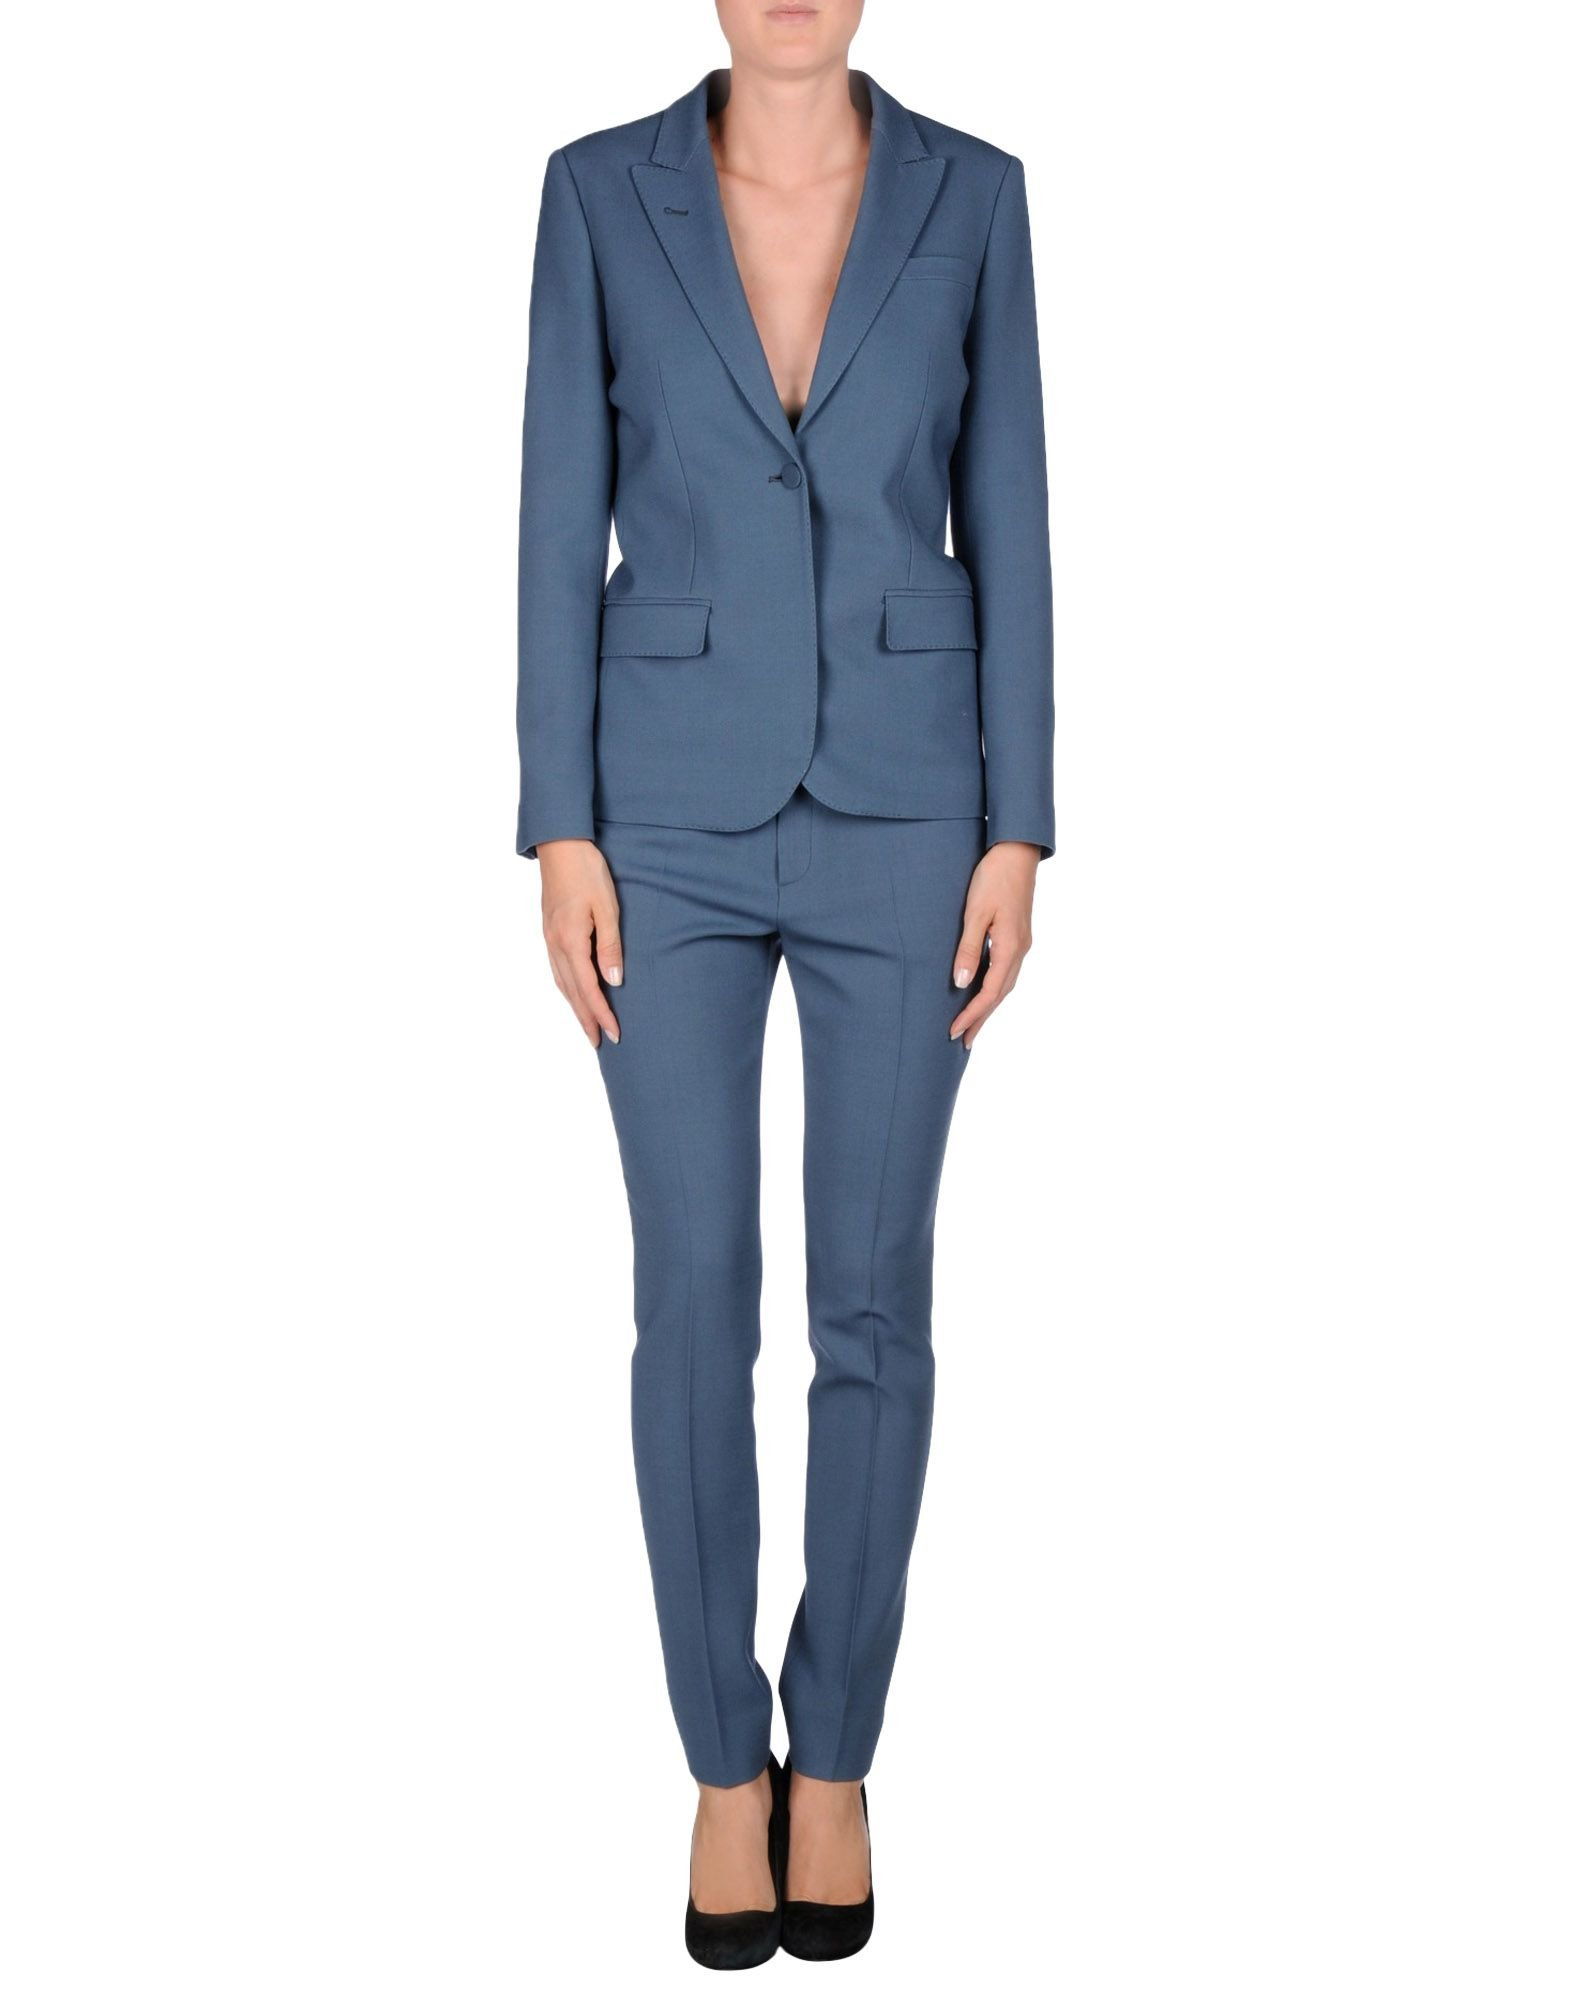 Gucci Women's Suit in Blue | Lyst